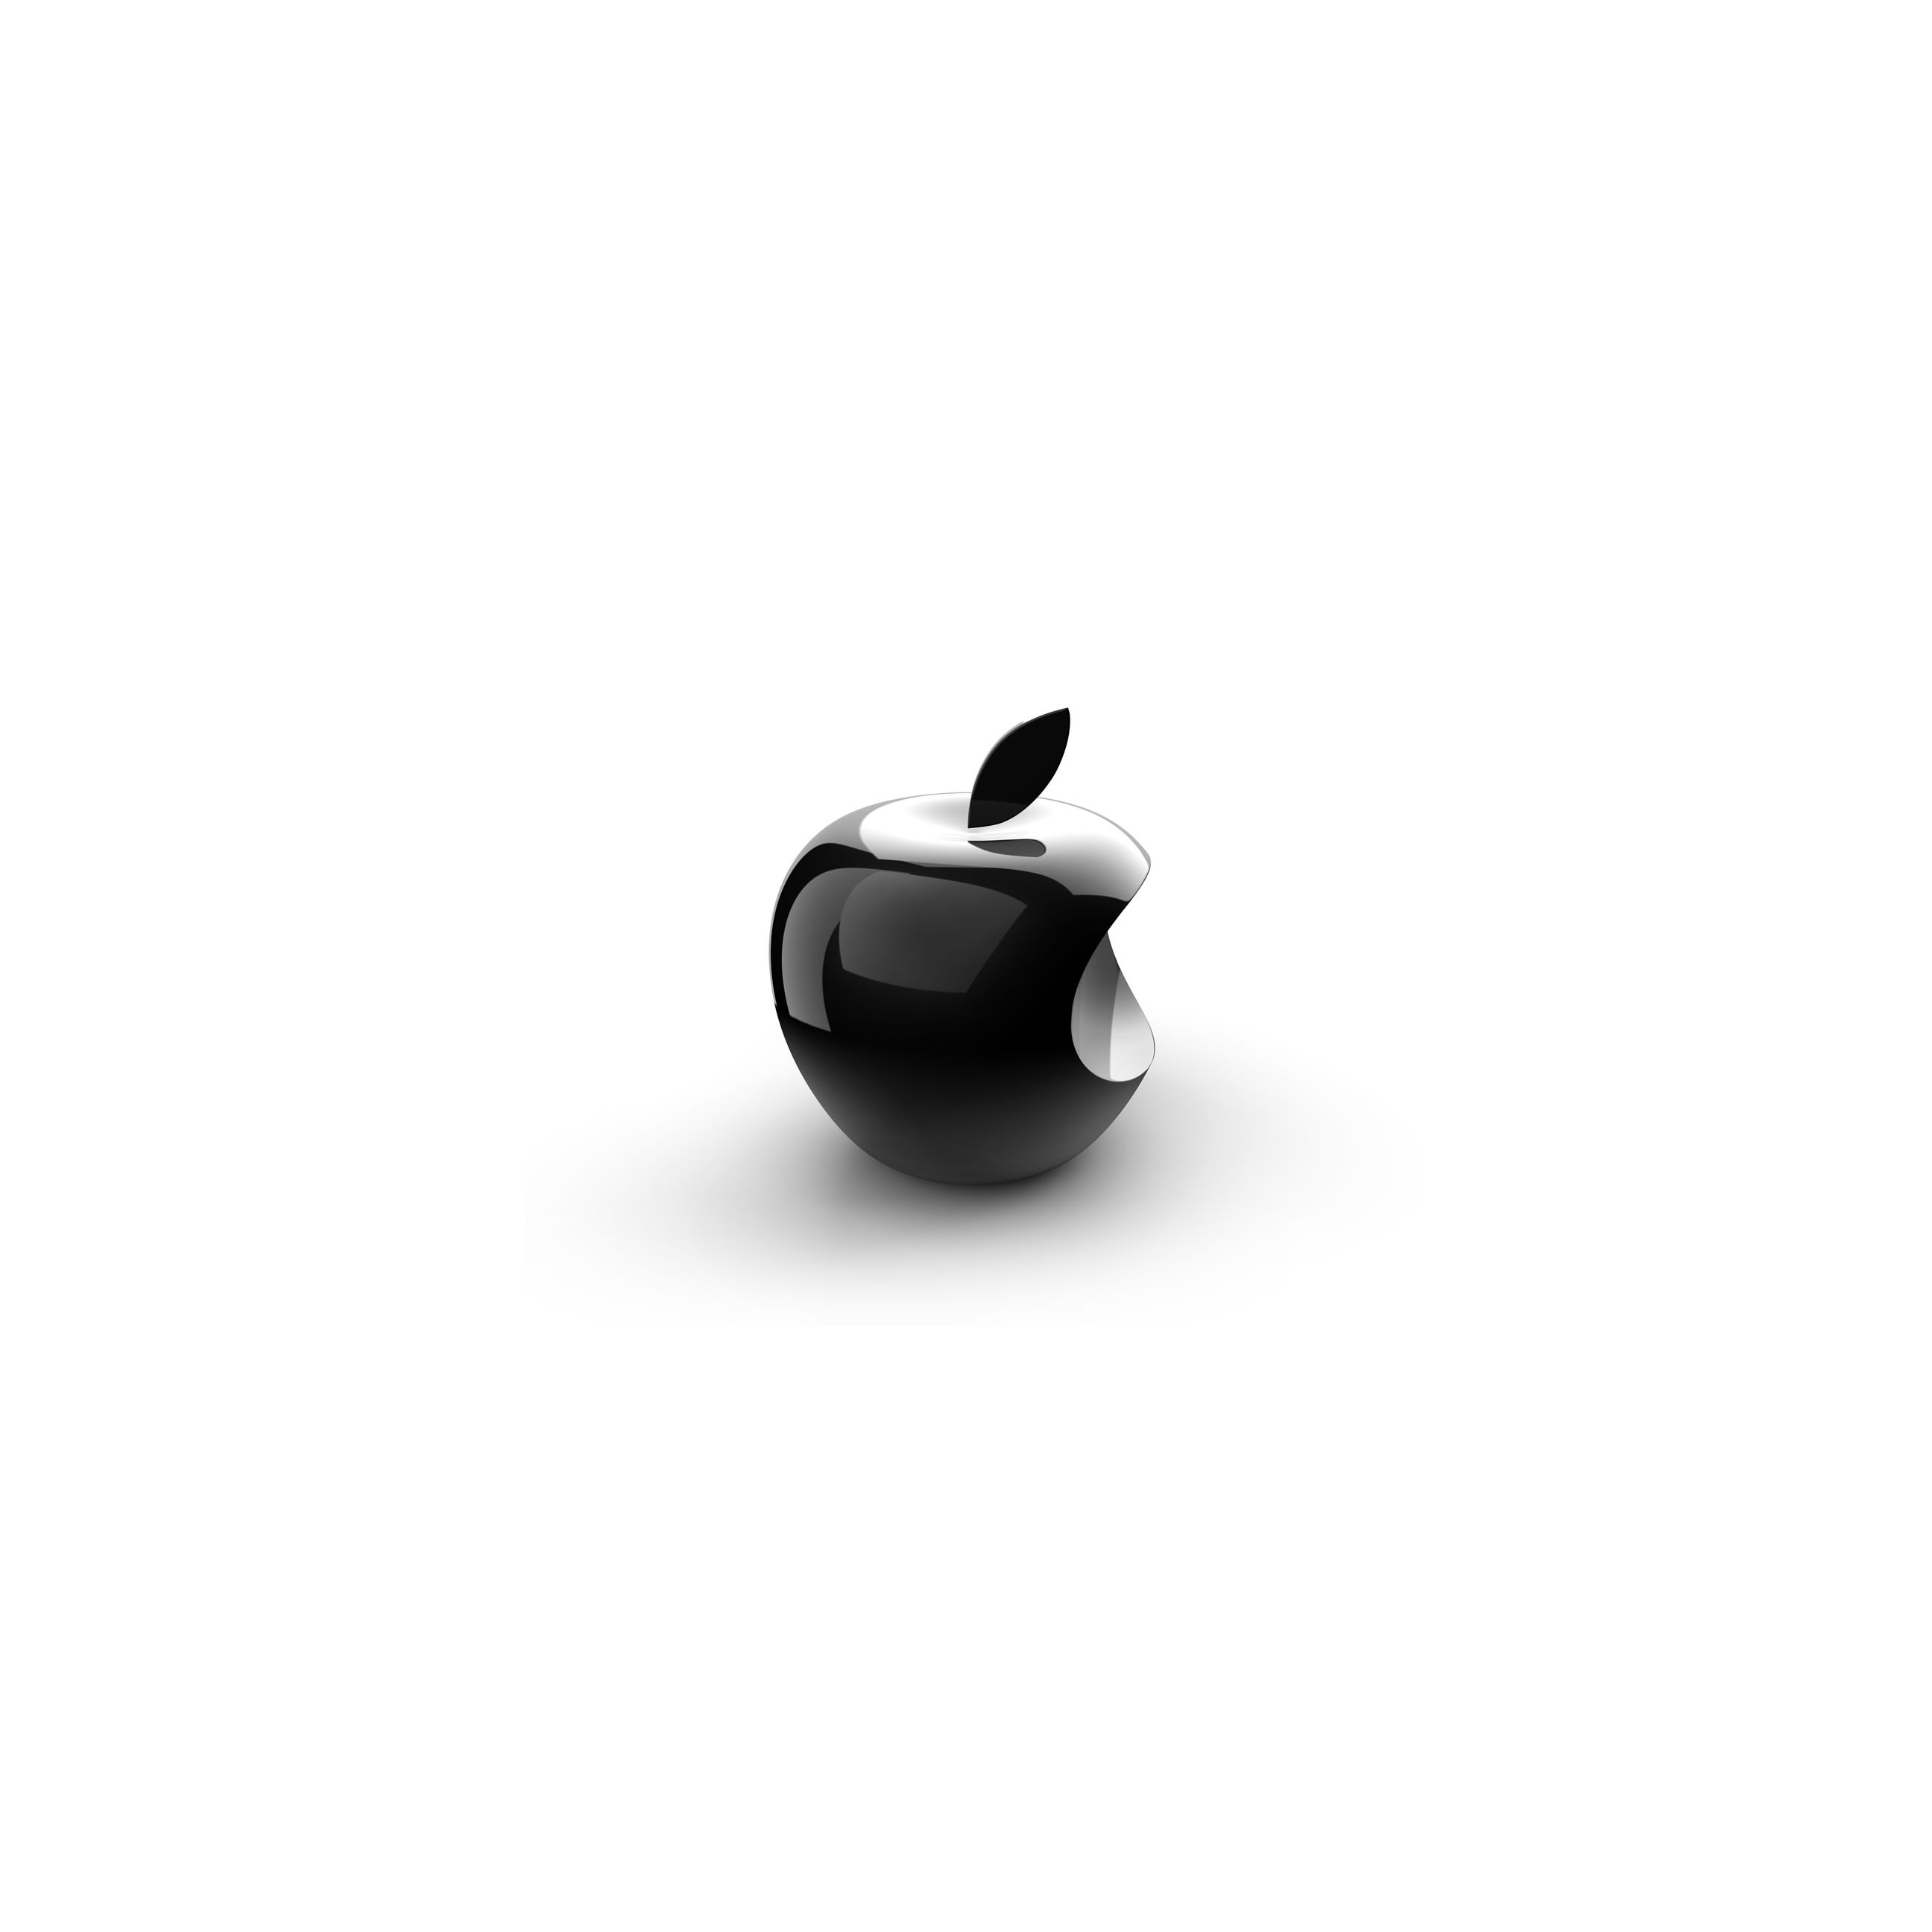 Apple logo 3D black and white wallpapersc iPhone6Plus 2592x2592